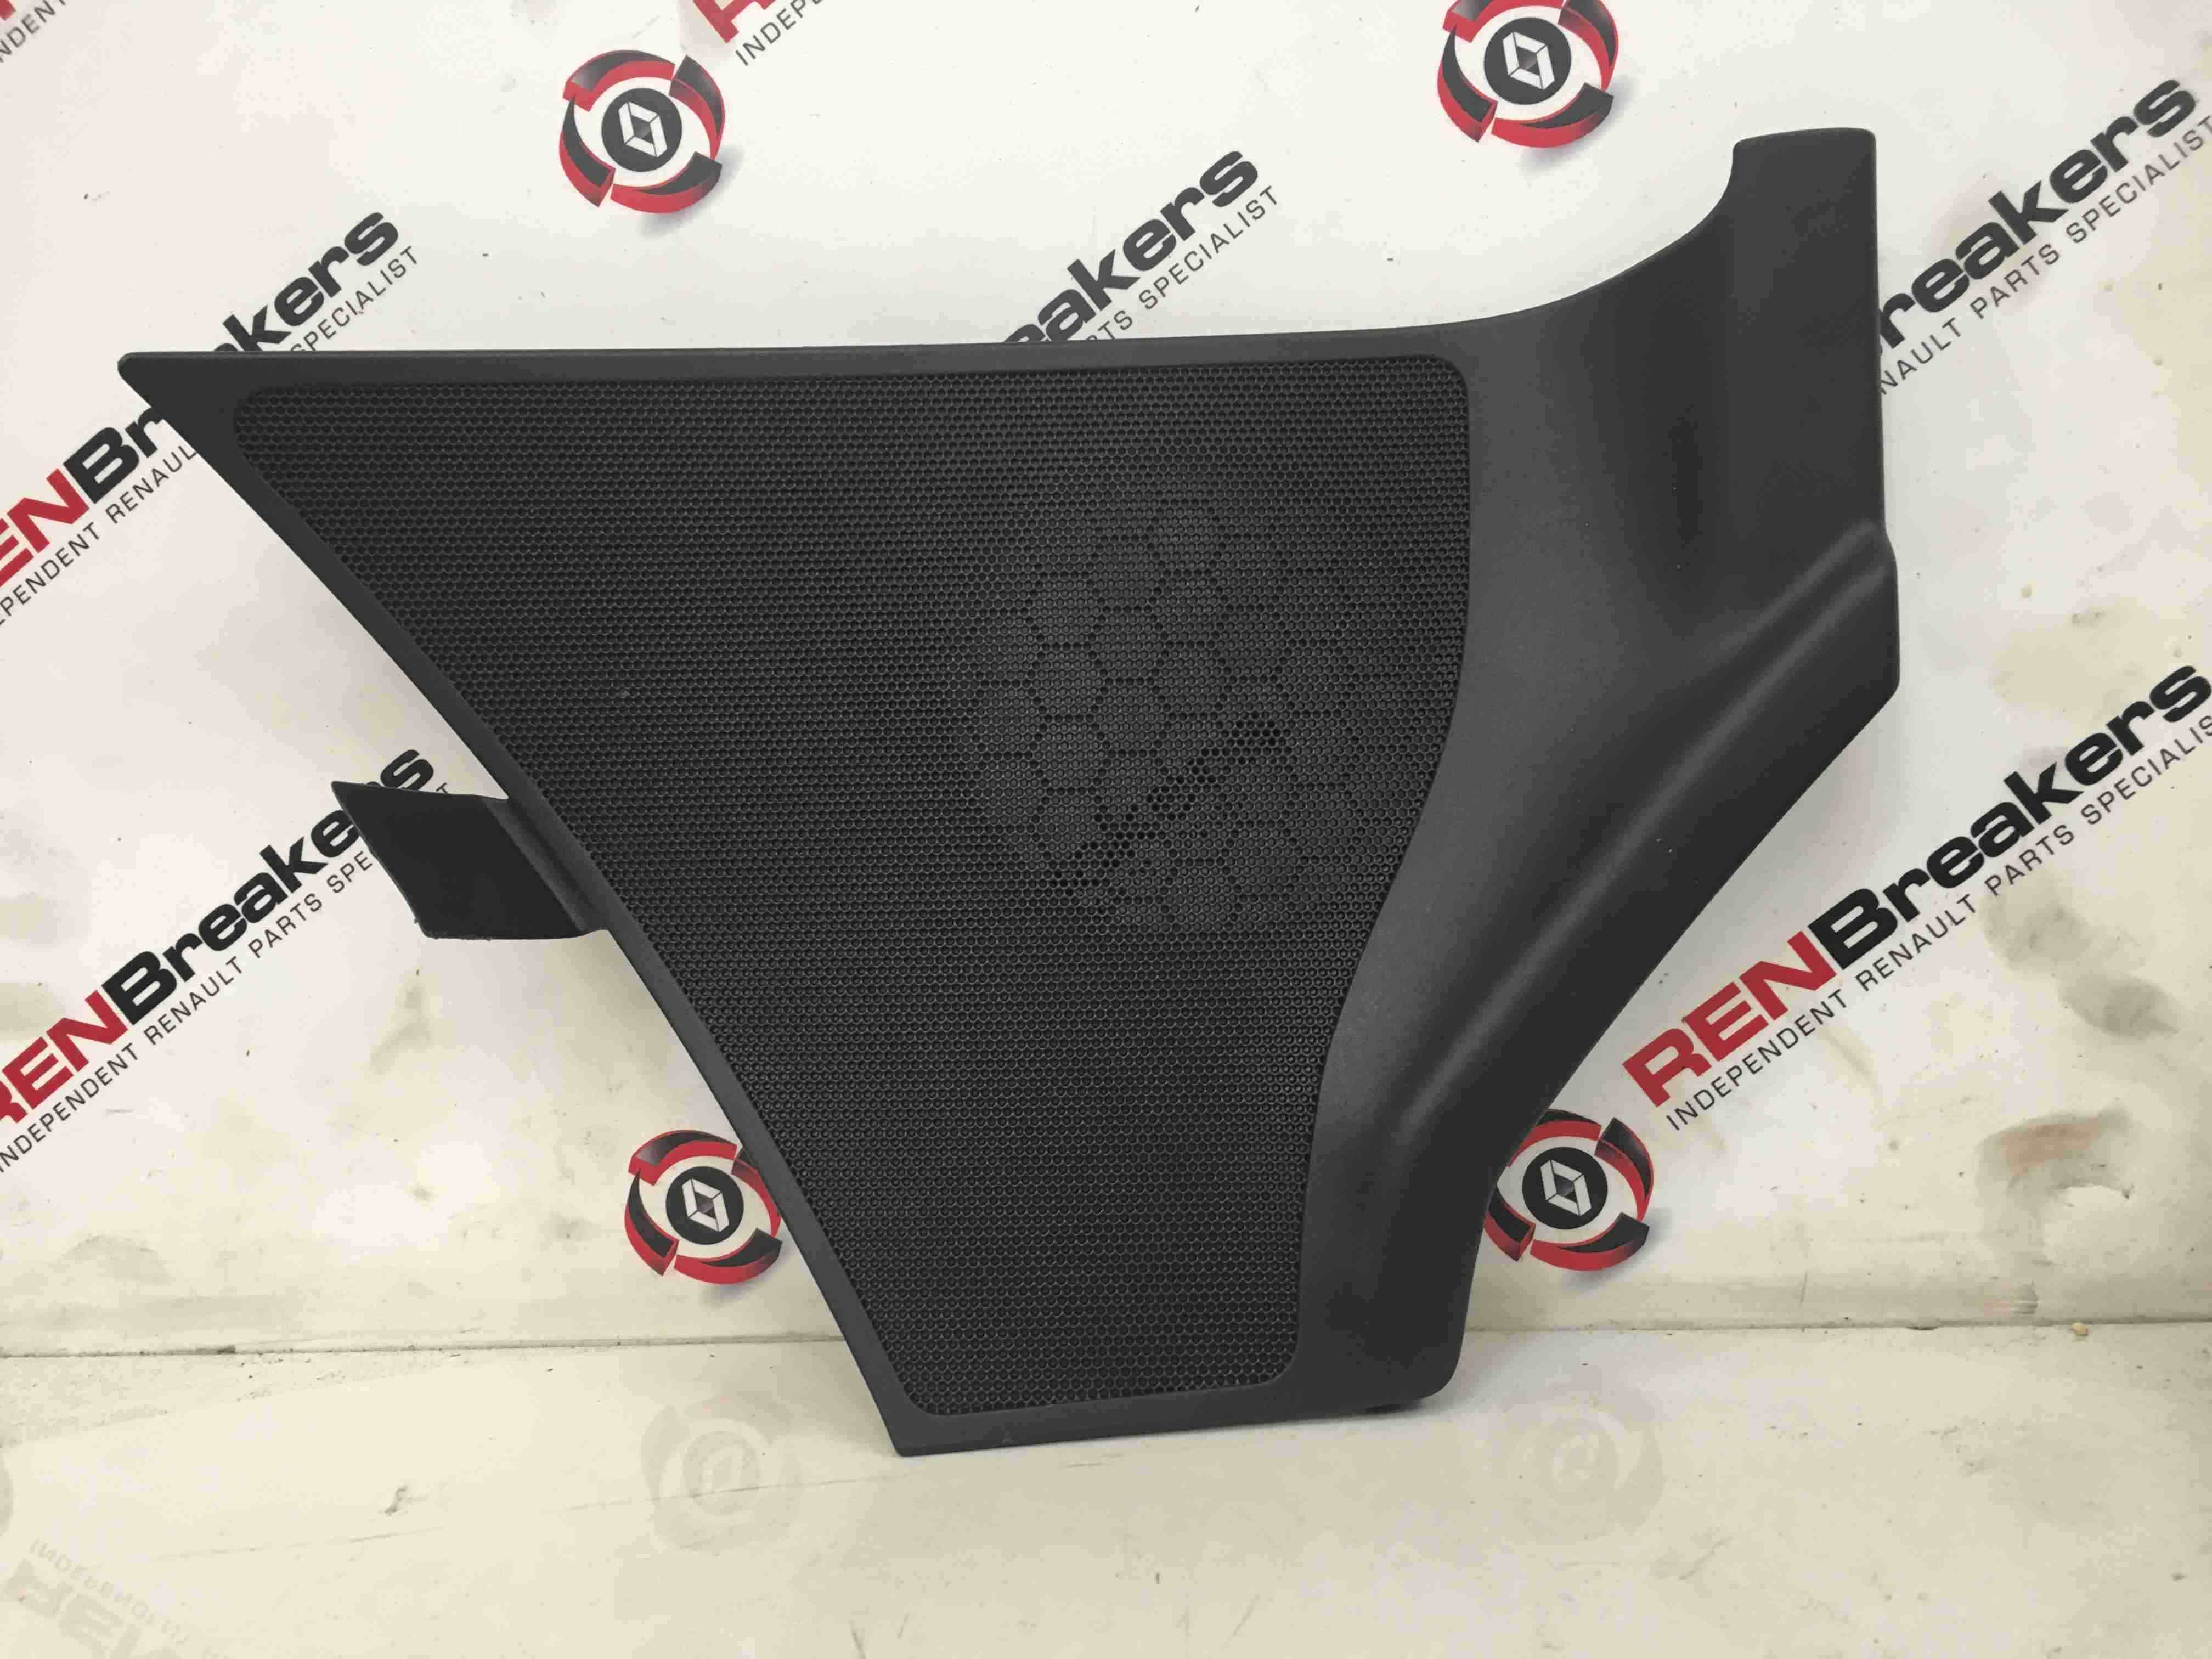 Renault Megane 2002-2008 Drivers OSF Front Speaker Grill Grille Cover 5DR